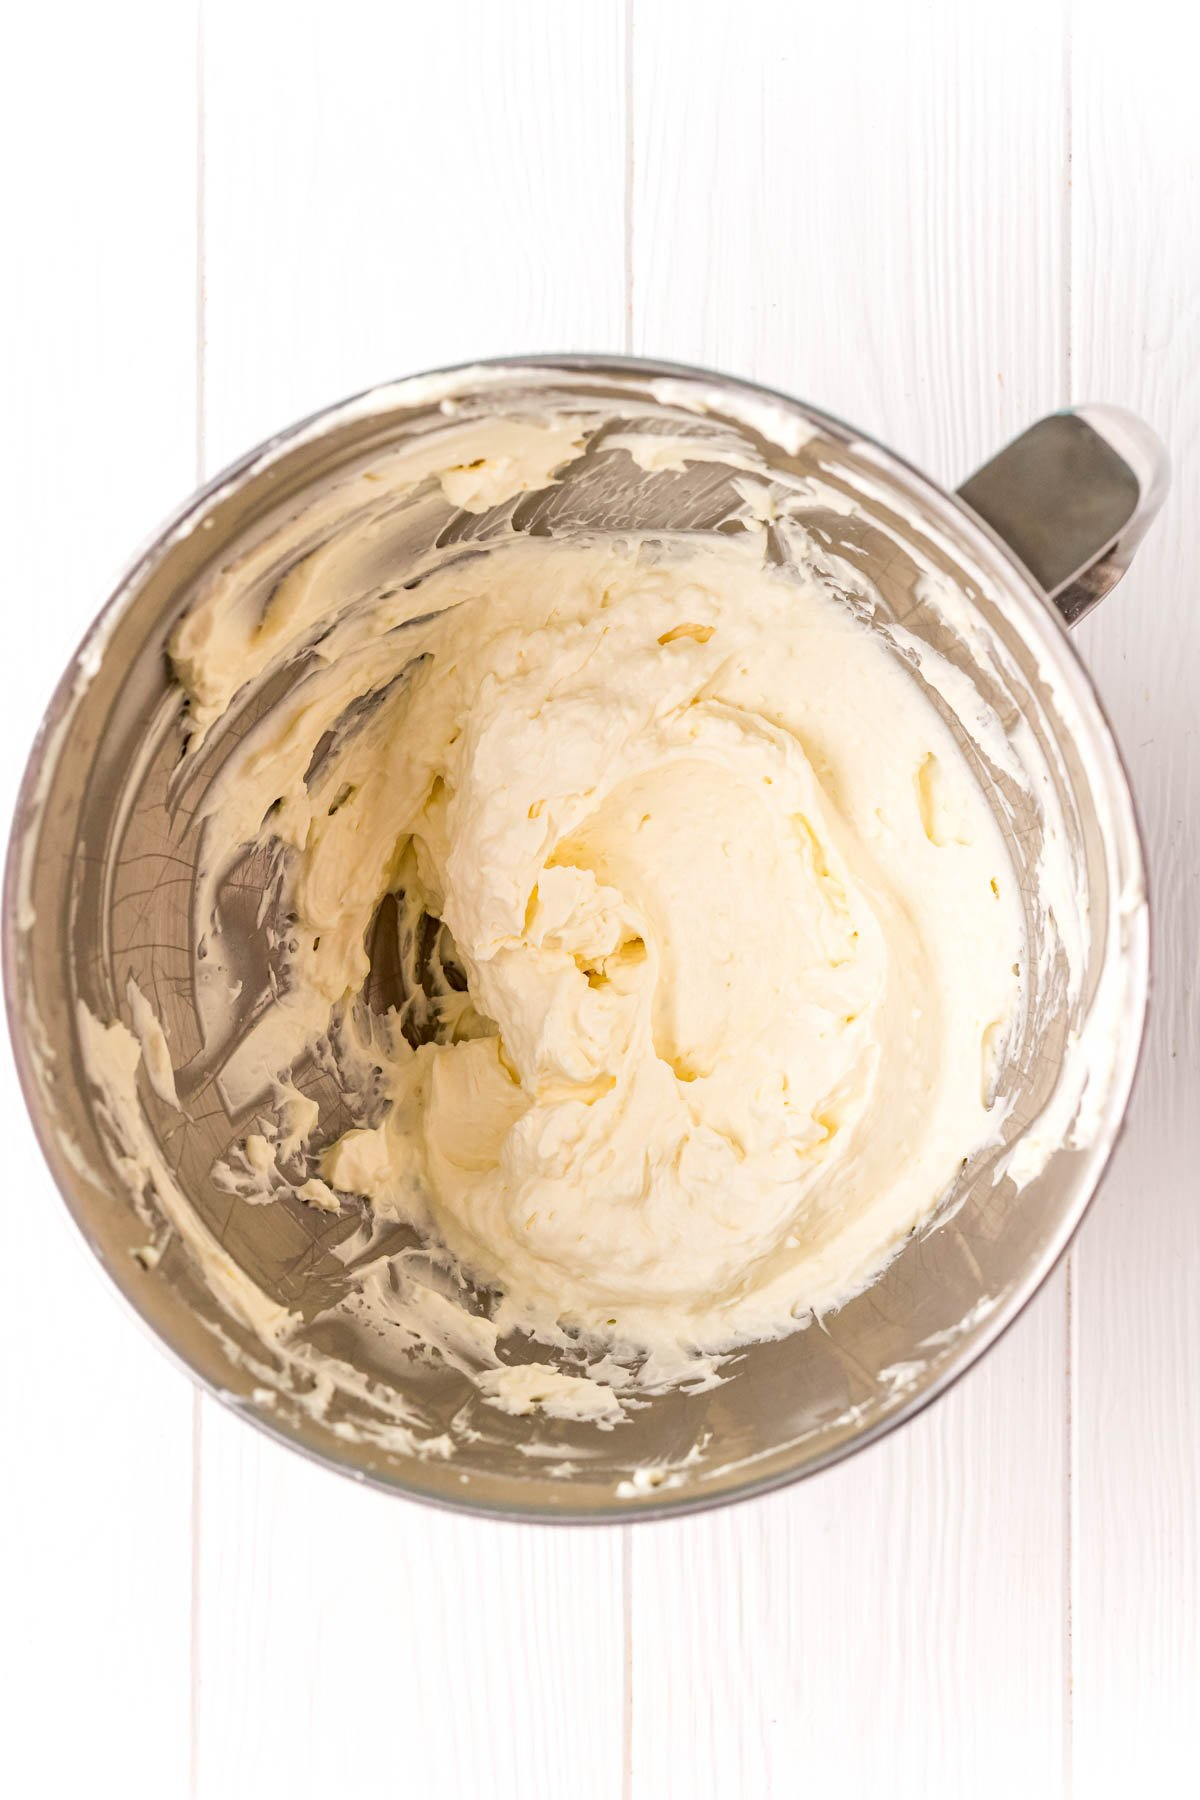 Whipped cream in a metal bowl